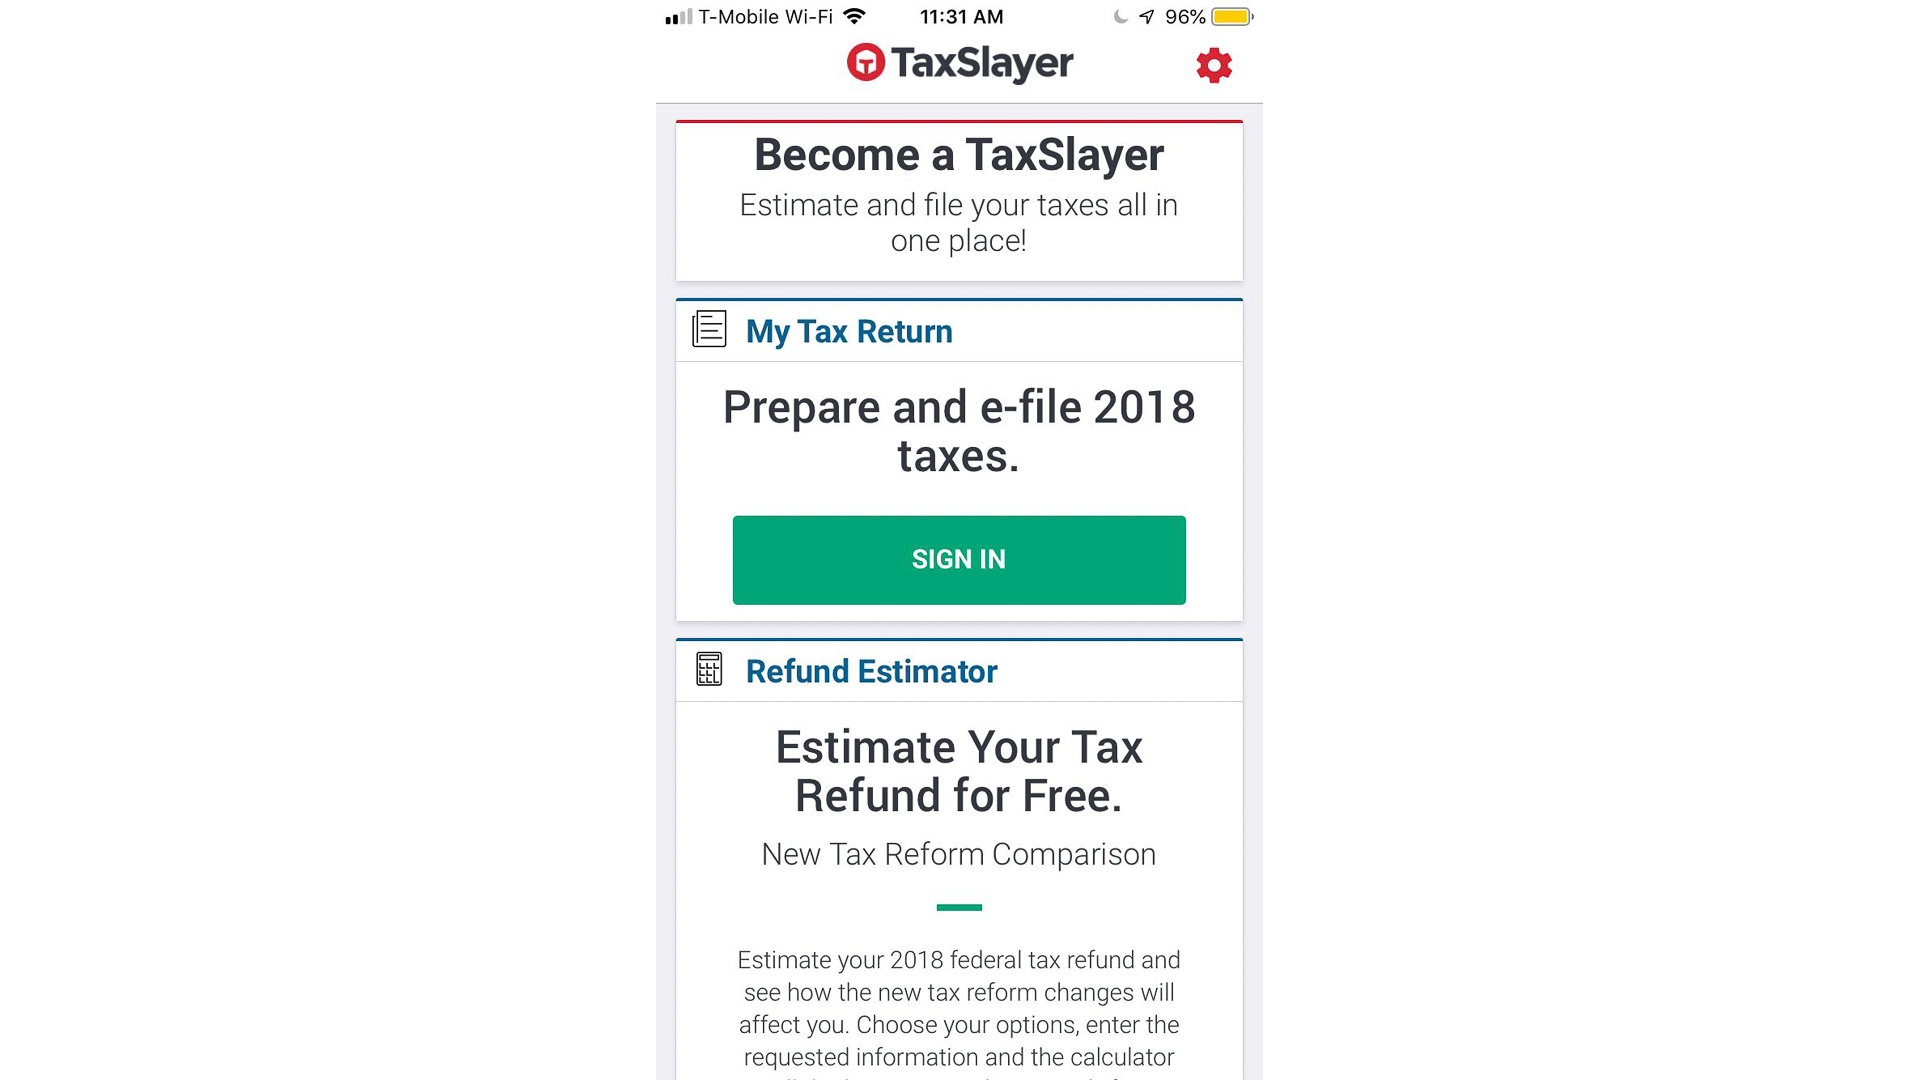 TaxSlayer mobile app